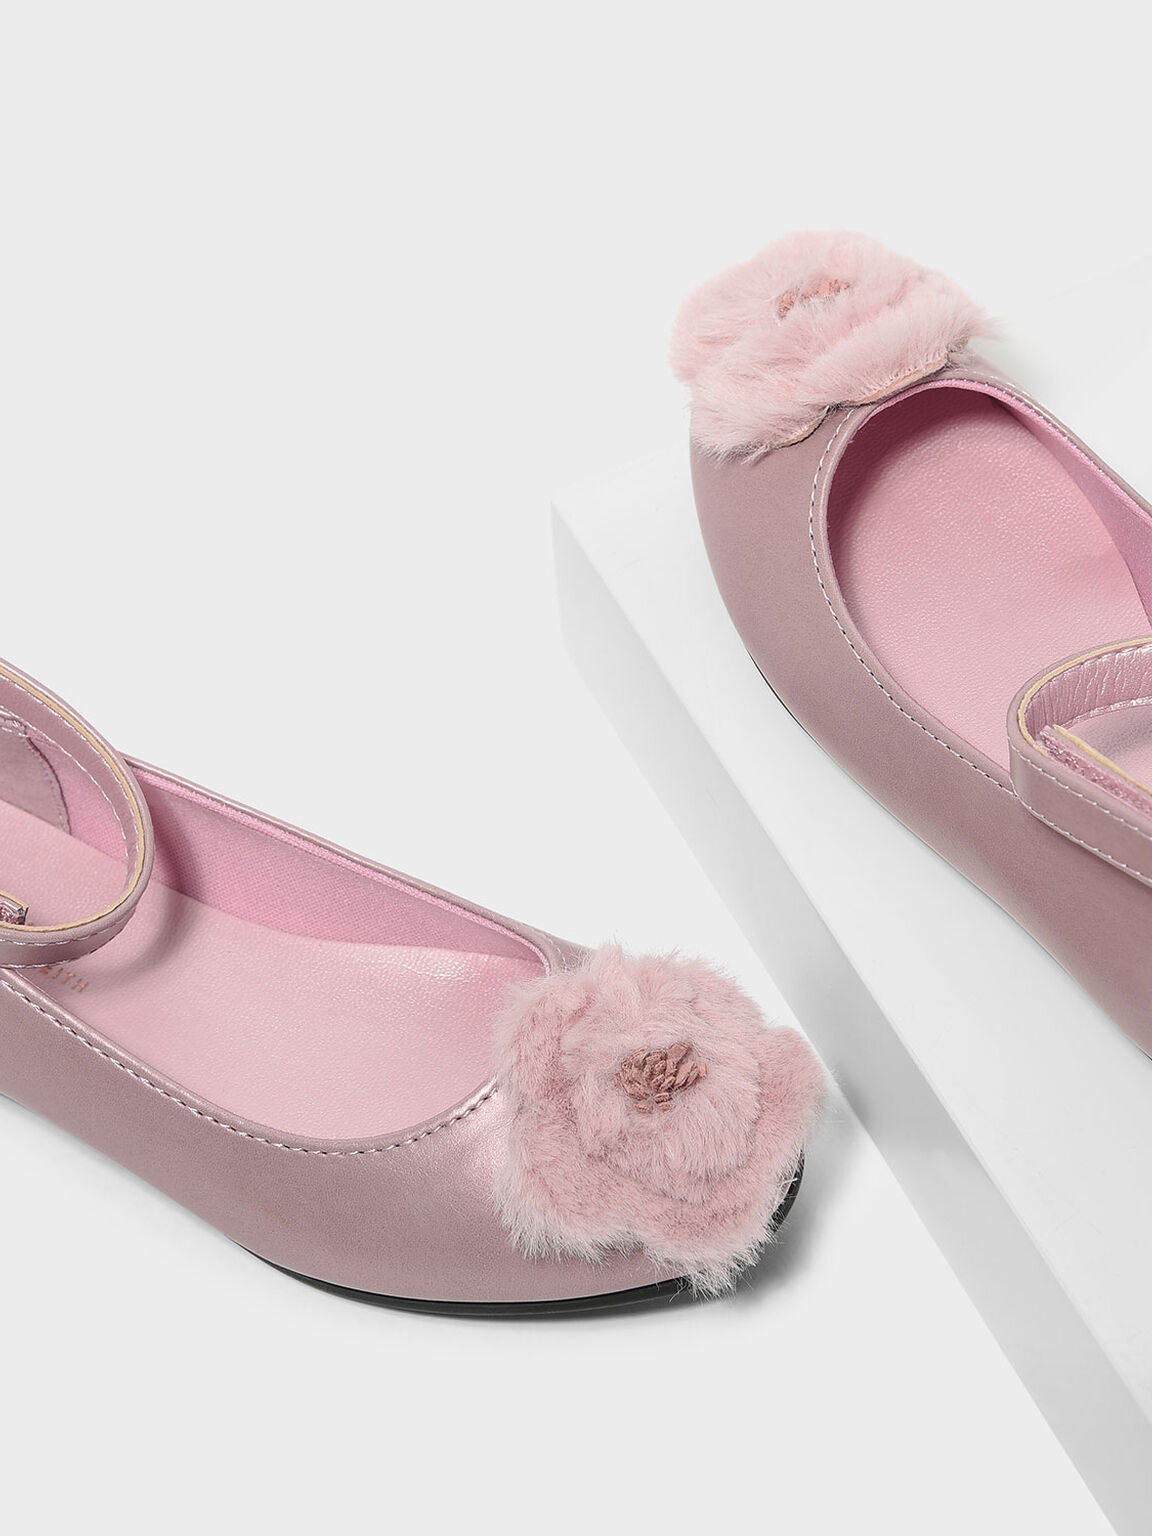 Kids Furry Floral Flats, Rose Gold, hi-res